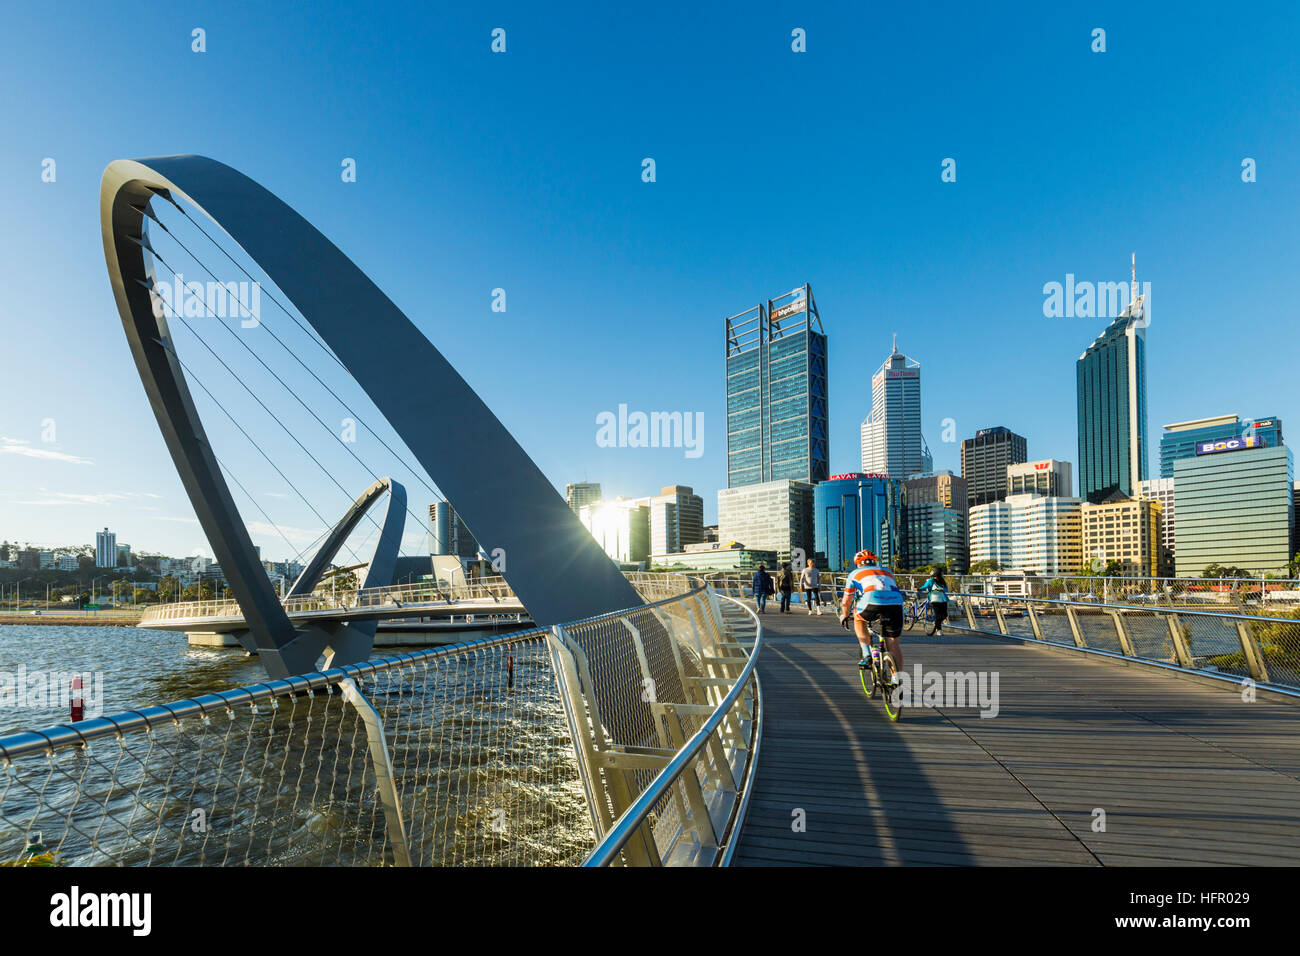 Cyclist crossing the Elizabeth Quay pedestrian bridge with the city skyline beyond, Perth, Western Australia, Australia Stock Photo